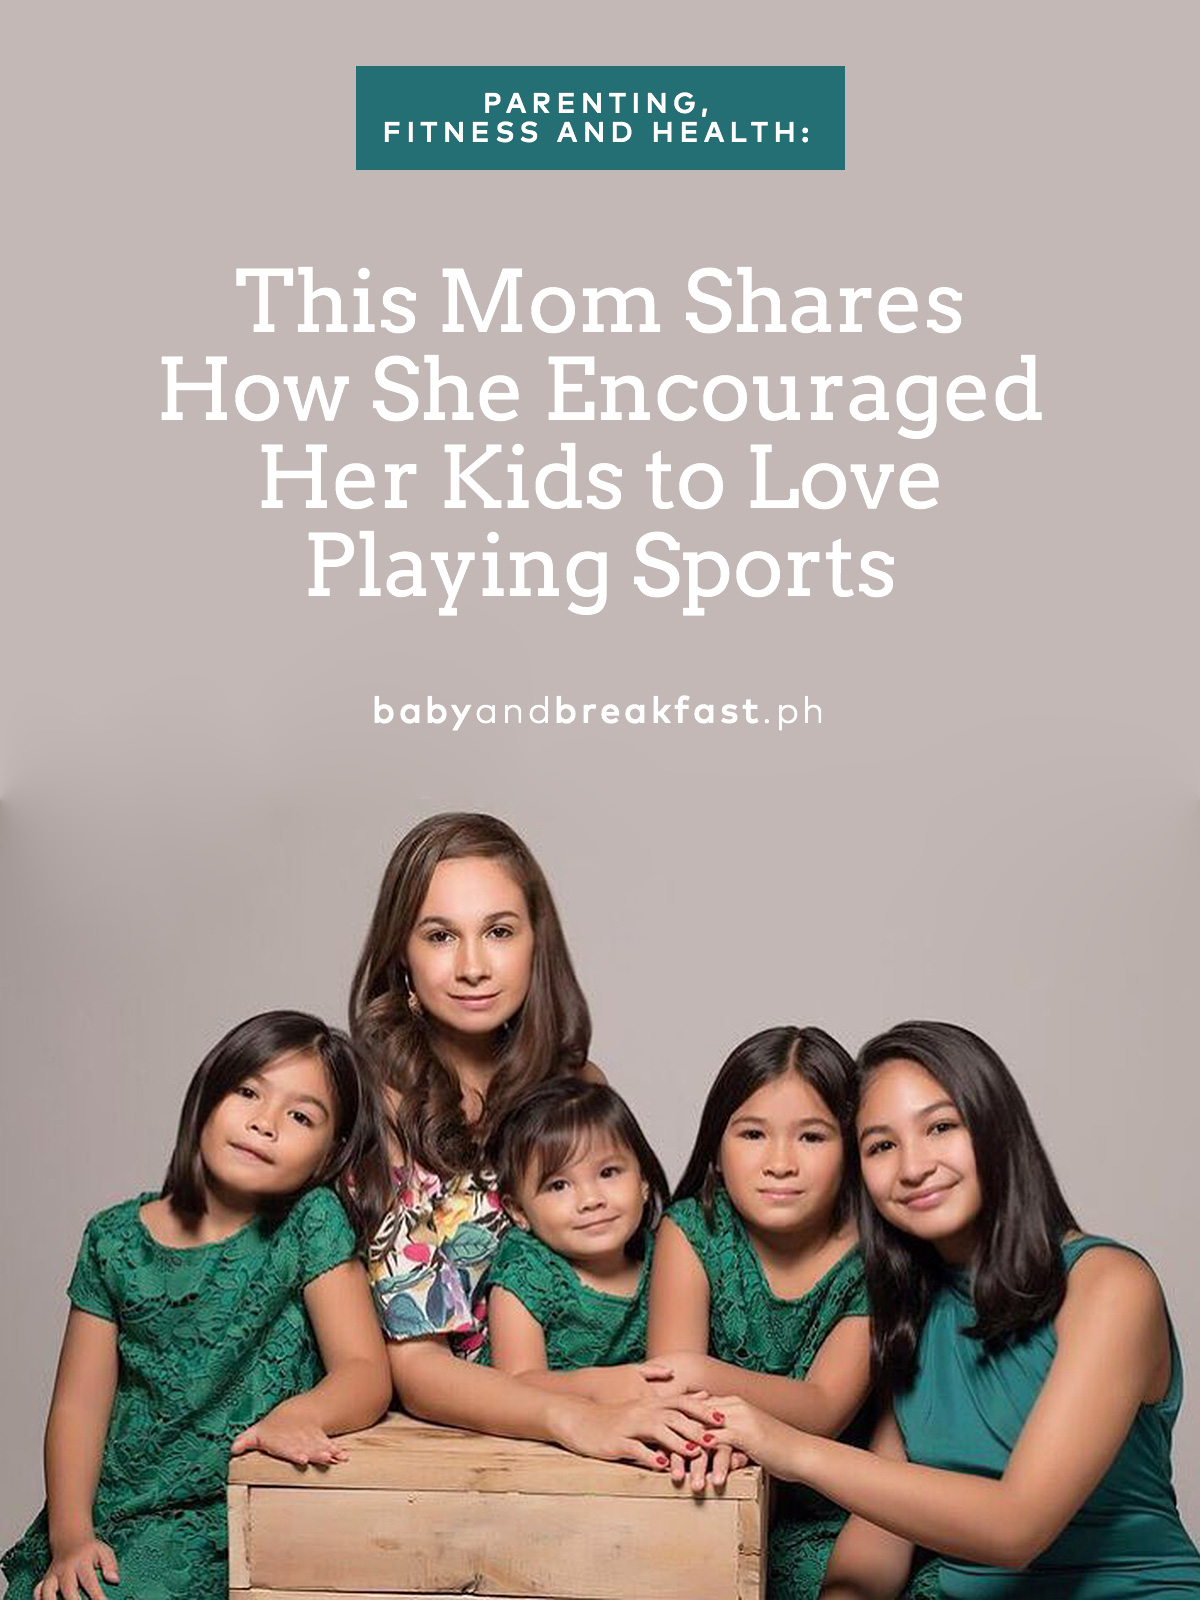 This Mom Shares How She Encouraged Her Kids to Love Playing Sports